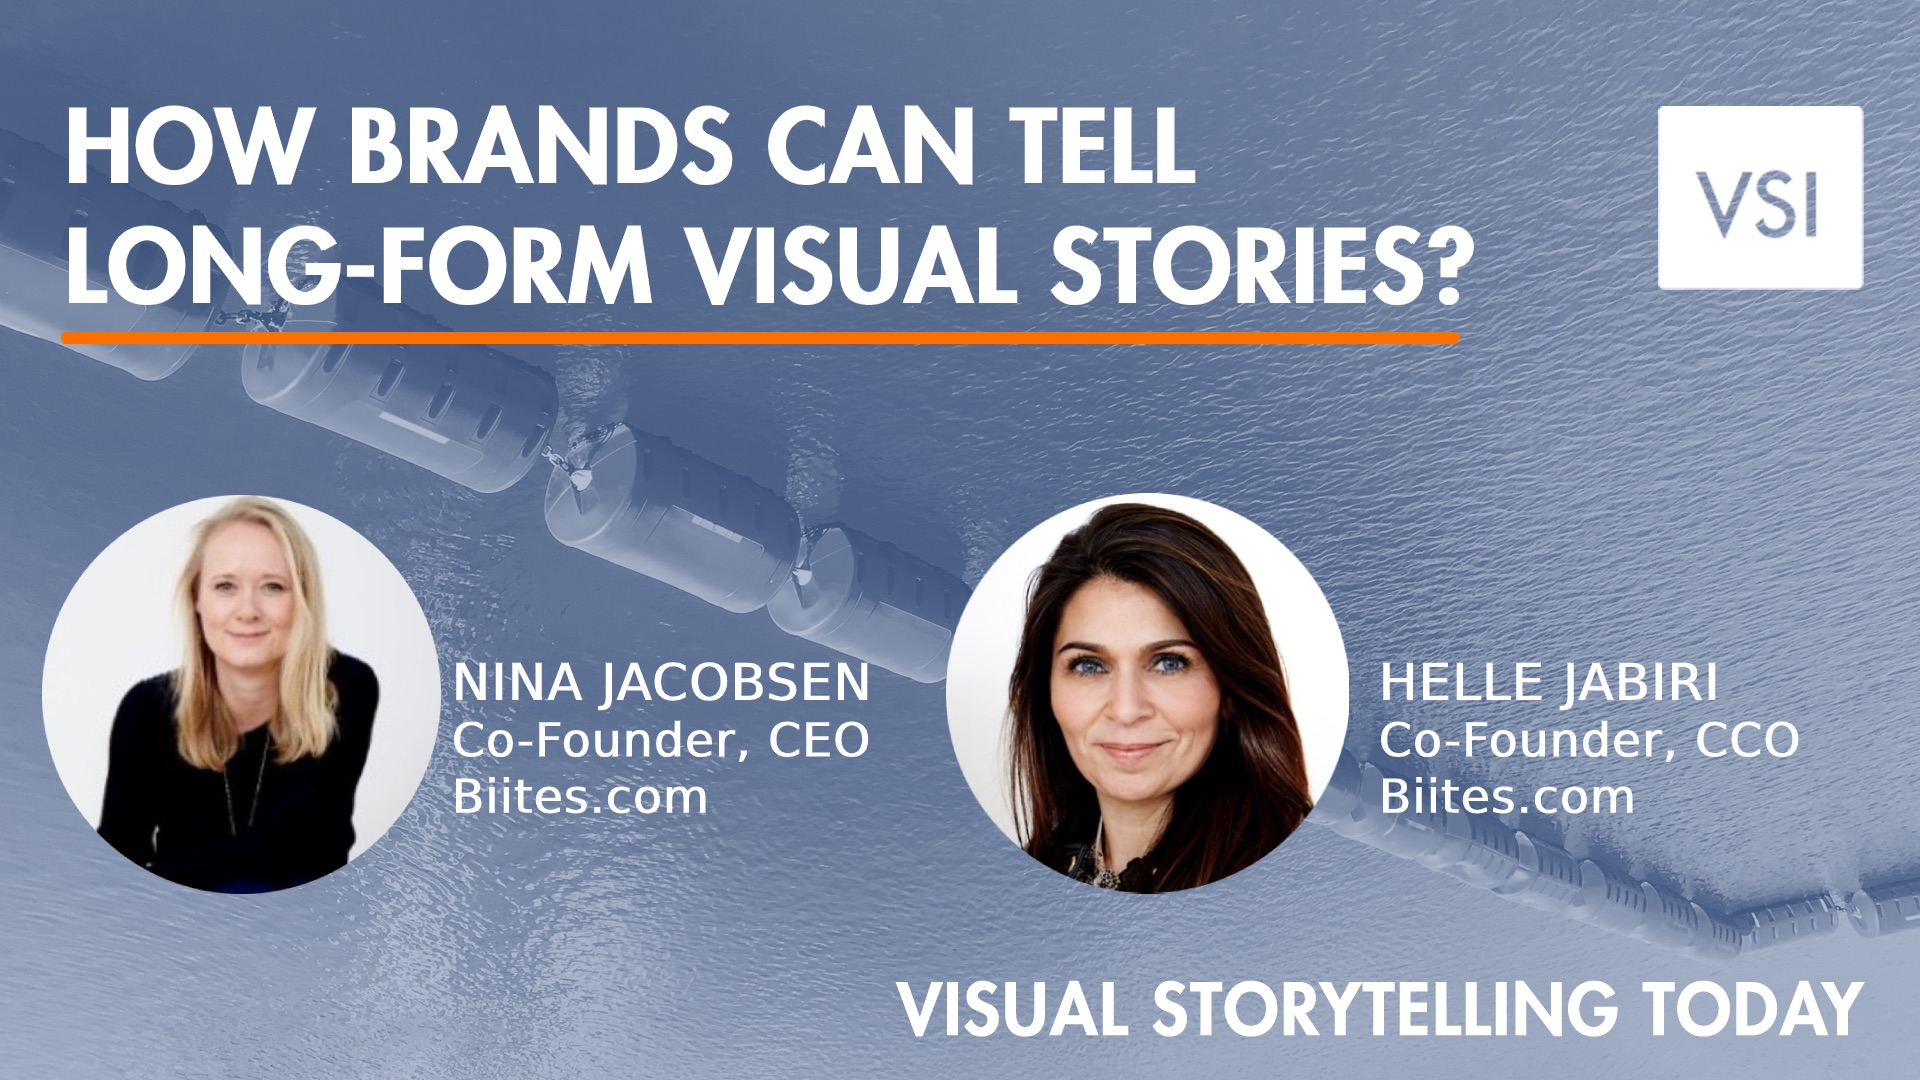 How brands can tell long-form visual stories?